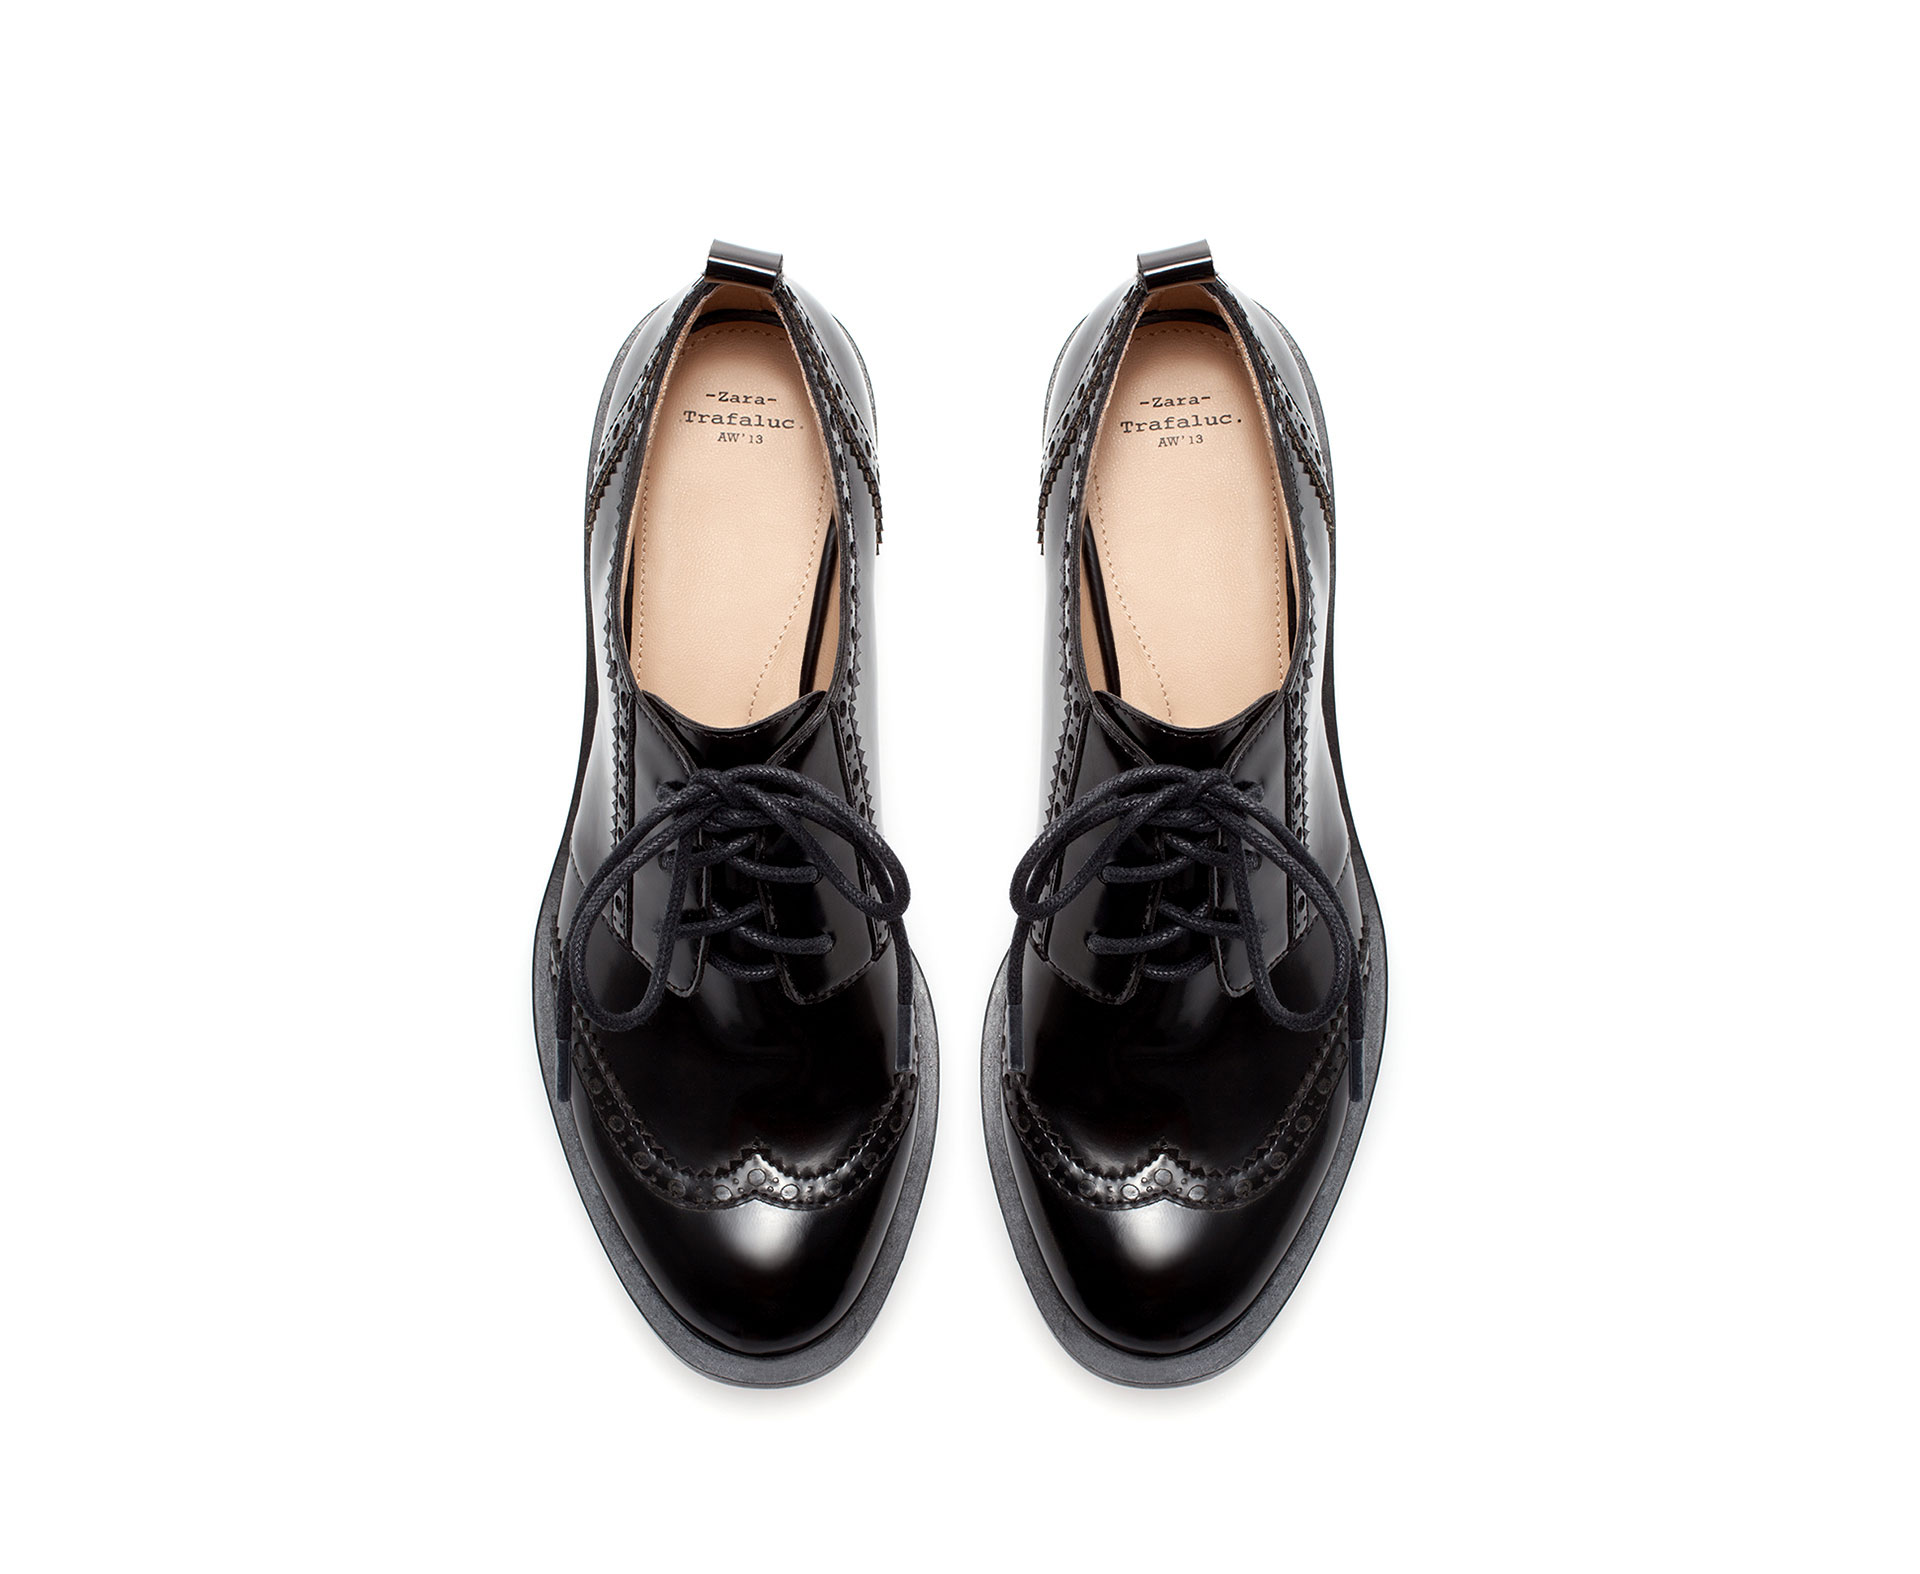 Lastest Shop Womens Zara Black Size 10 Shoes At A Discounted Price At Poshmark  Toast Maisie Brogue $350 Liked On Polyvore Featuring Shoes, Oxfords, Flats, Sapatos, Indigo, Oxford Shoes, Leather Sole Shoes, Flat Oxford Shoes, Oxford